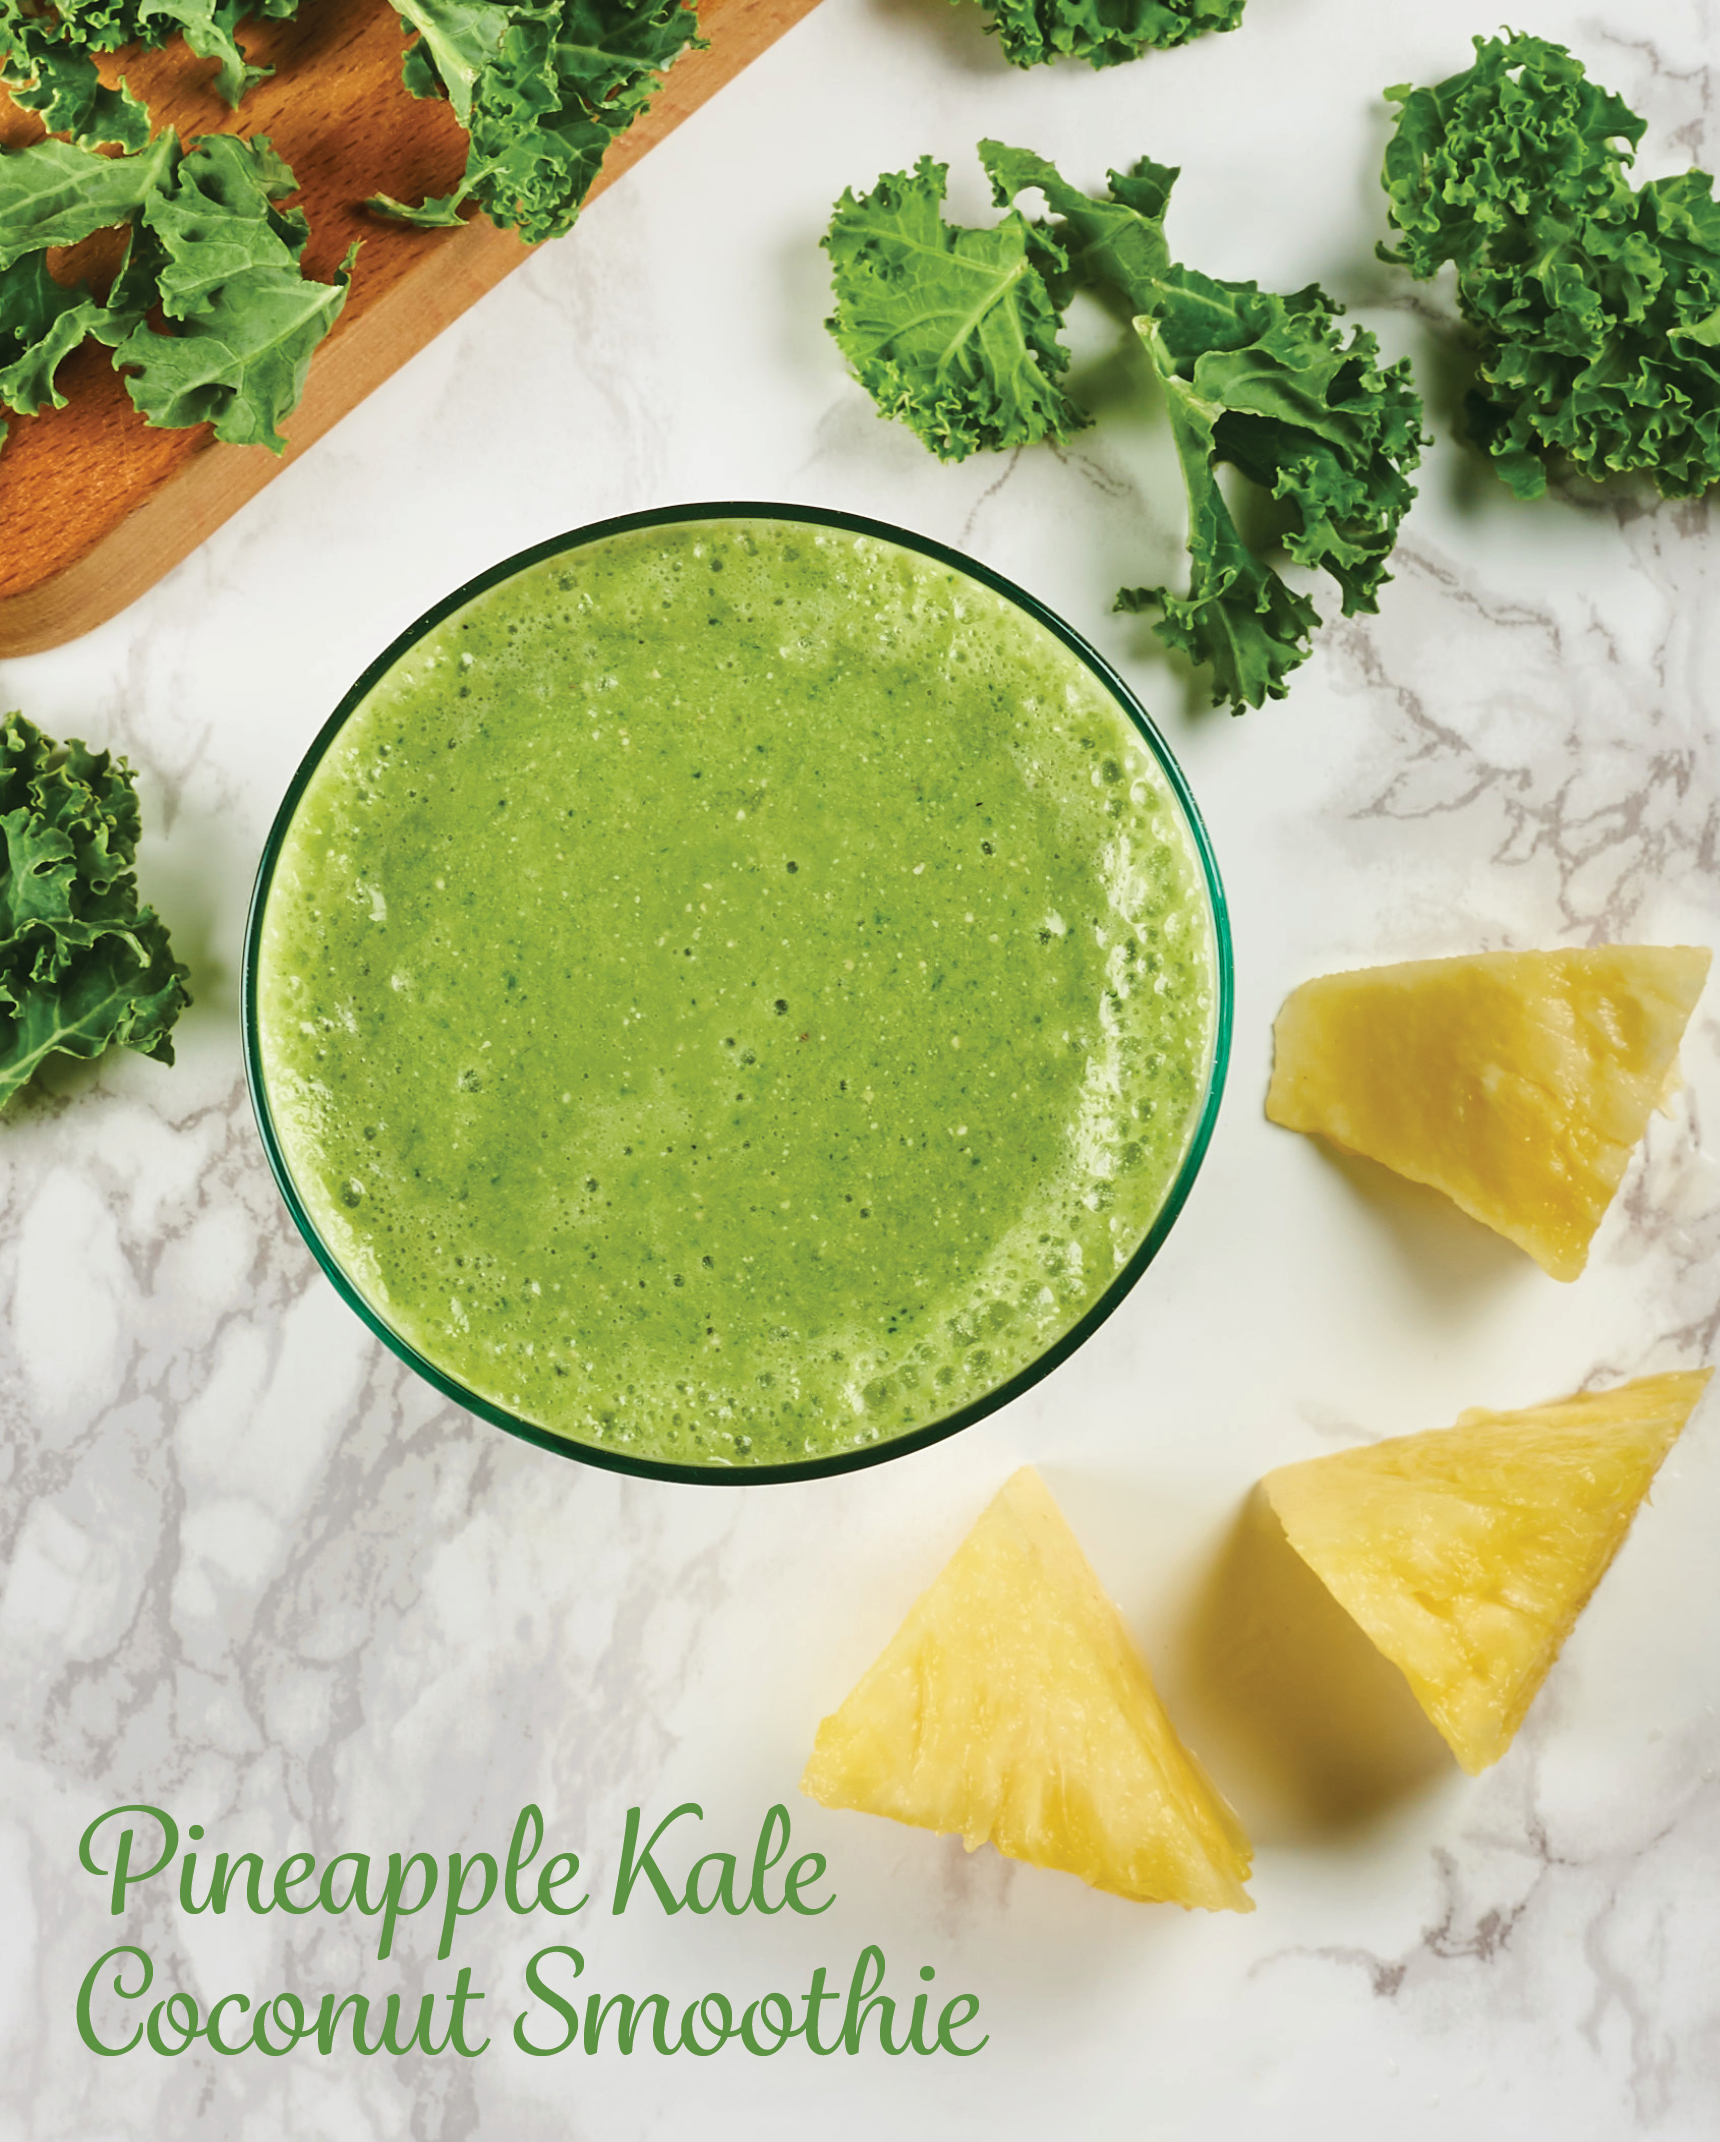 Pineapple Kale Coconut Smoothie.jpg